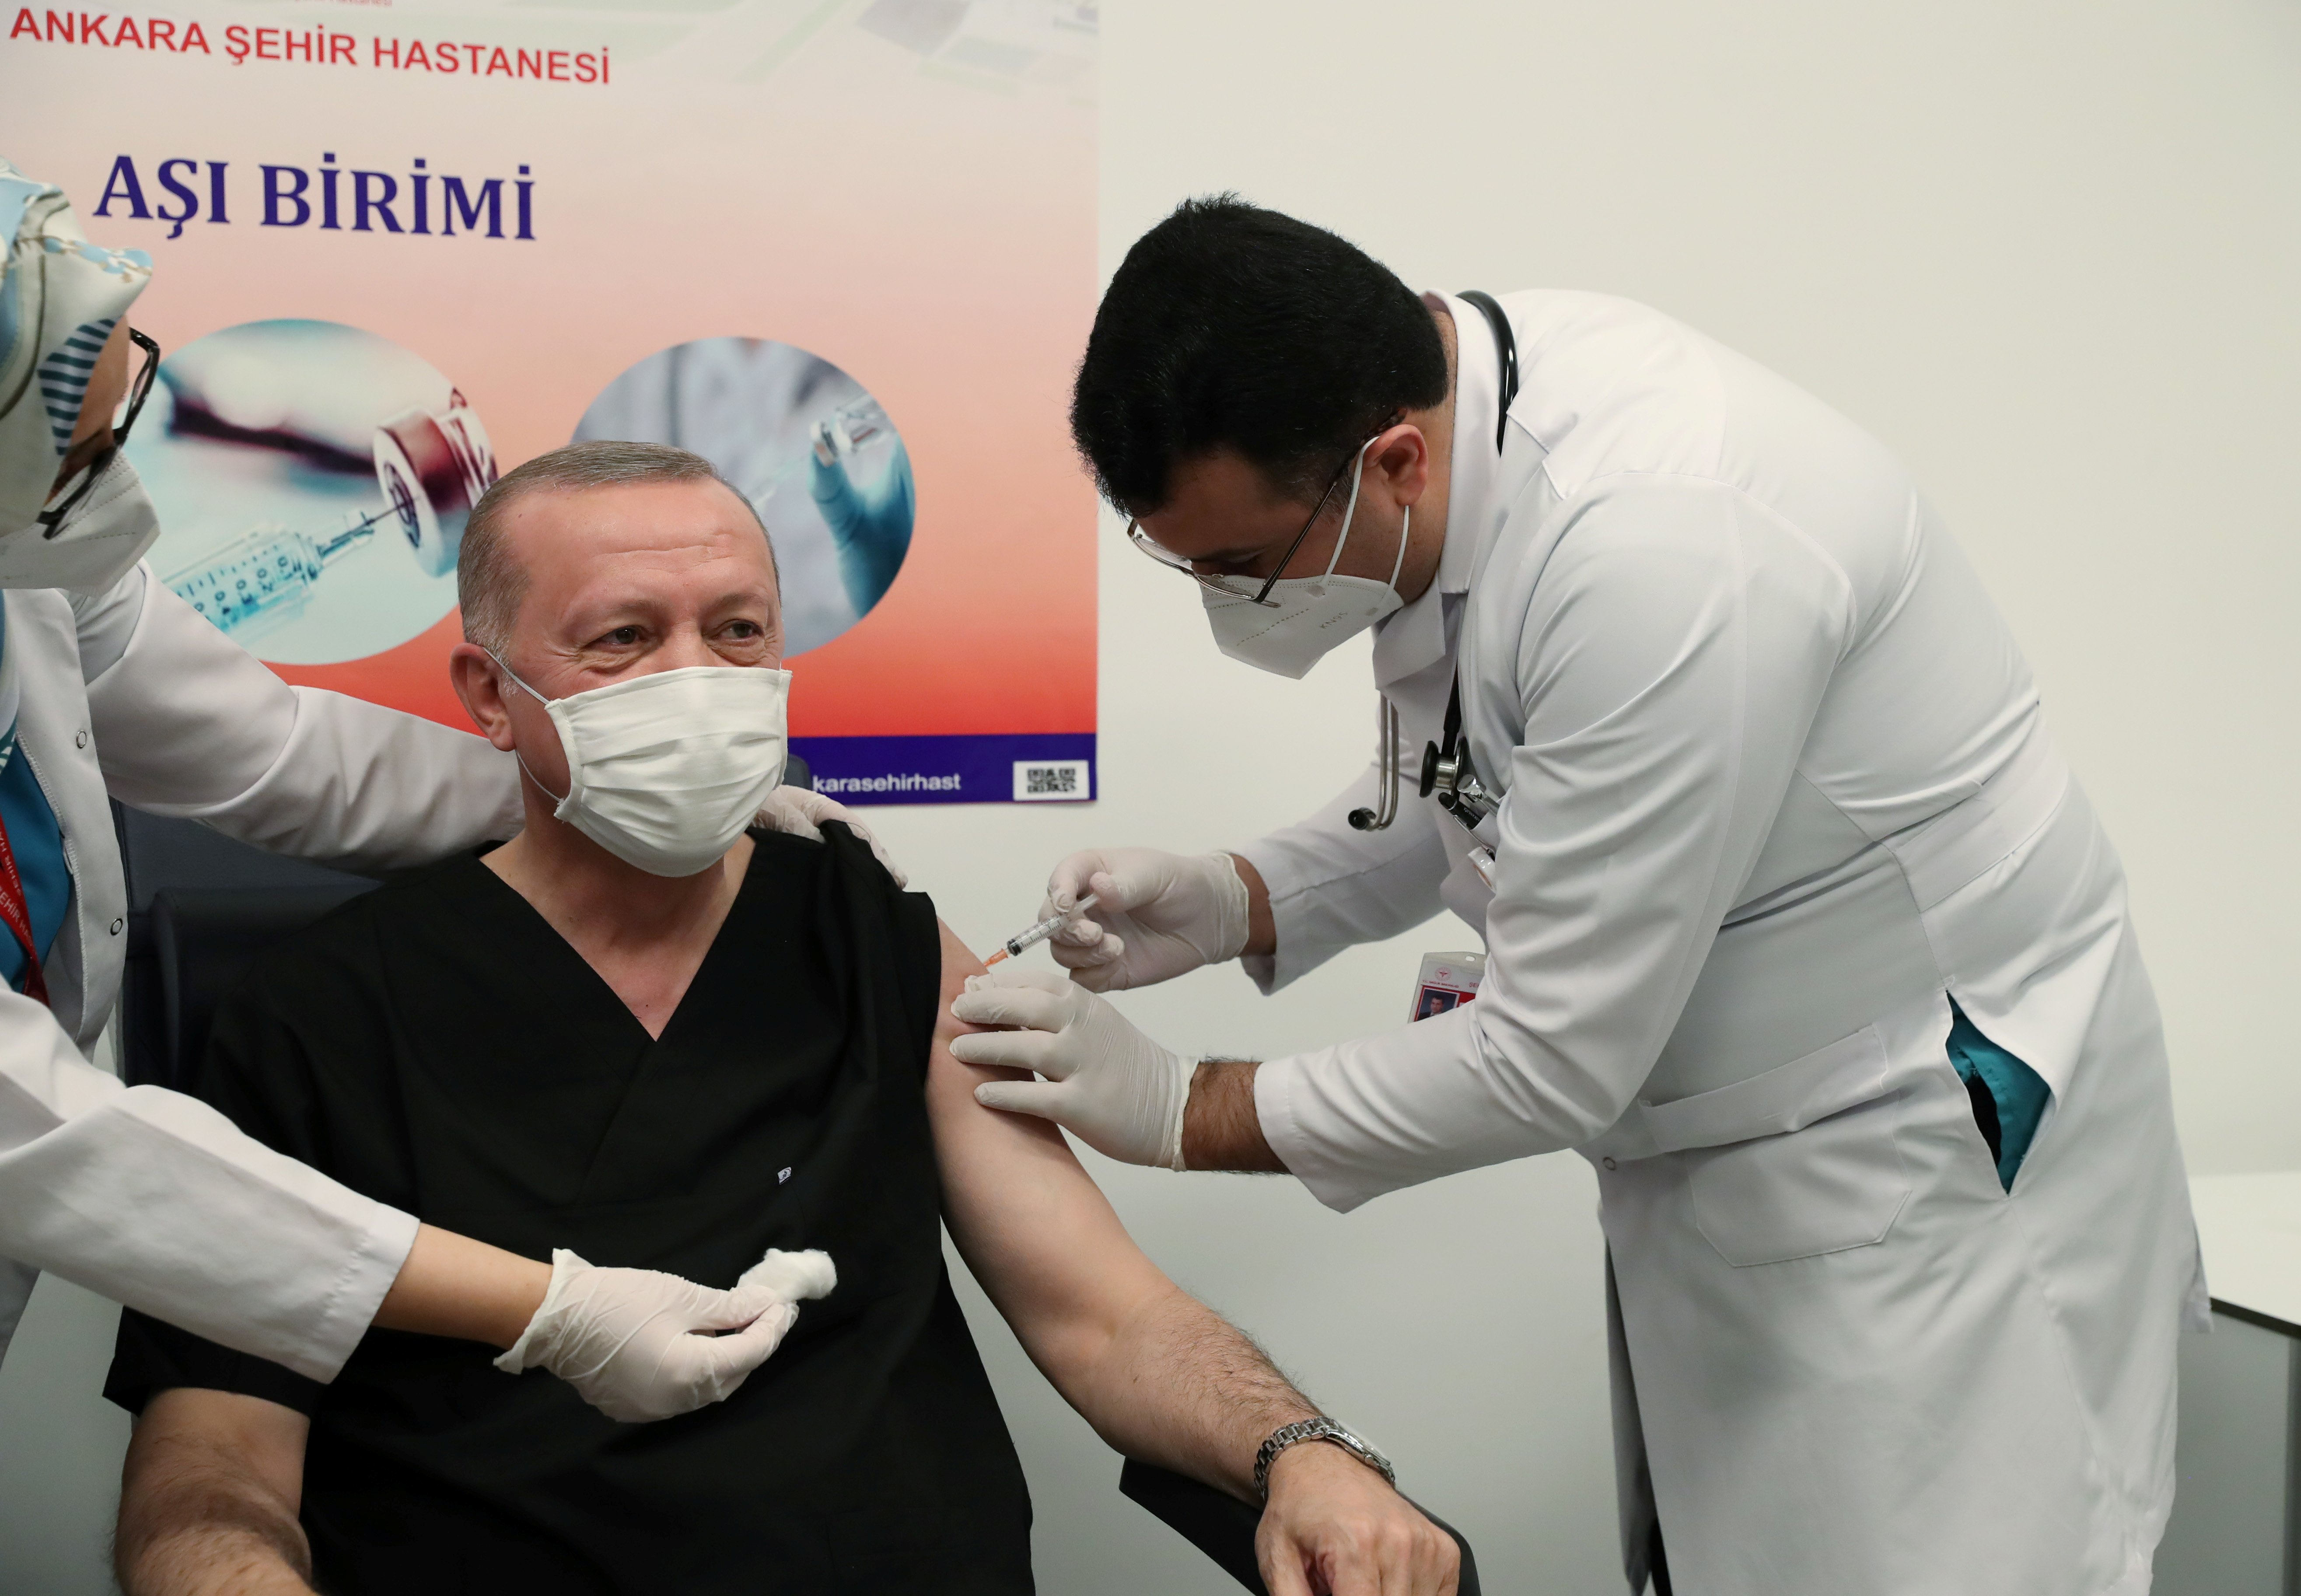 Covid-19: Turkey announces more than 250,000 health workers vaccinated so far